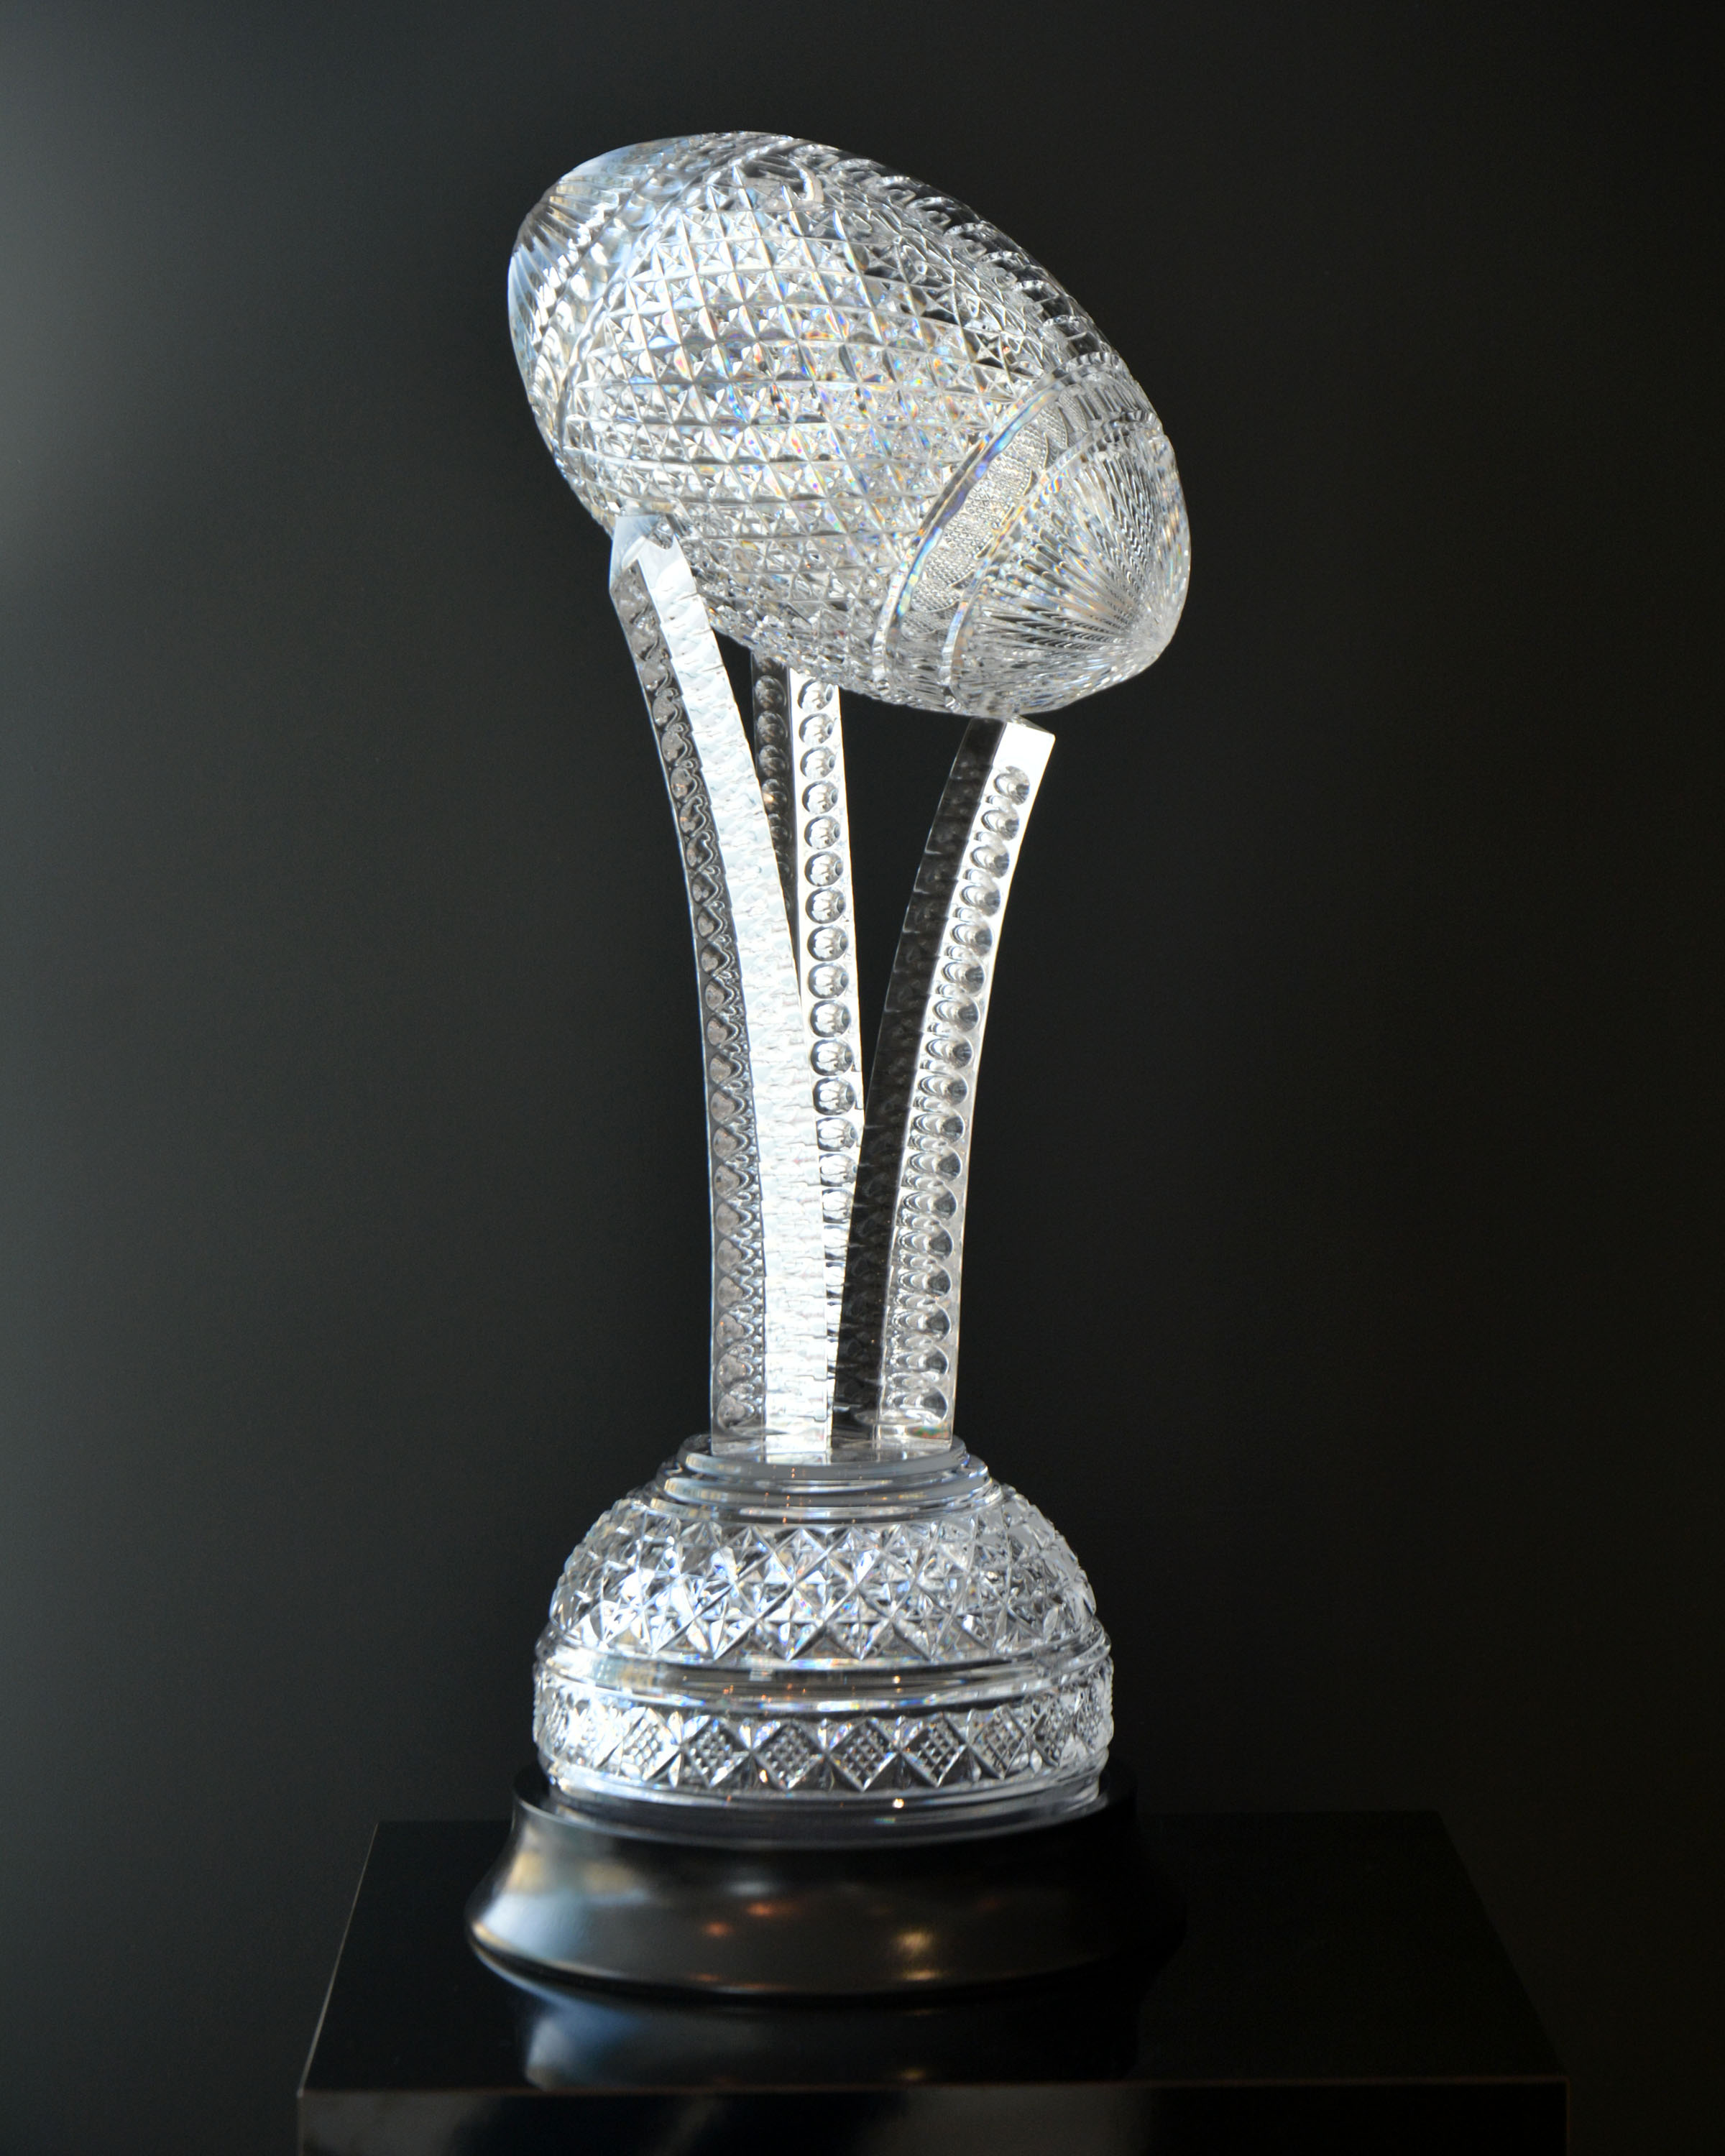 The House of Waterford Crystal Keough–Naughton College Football Trophy.